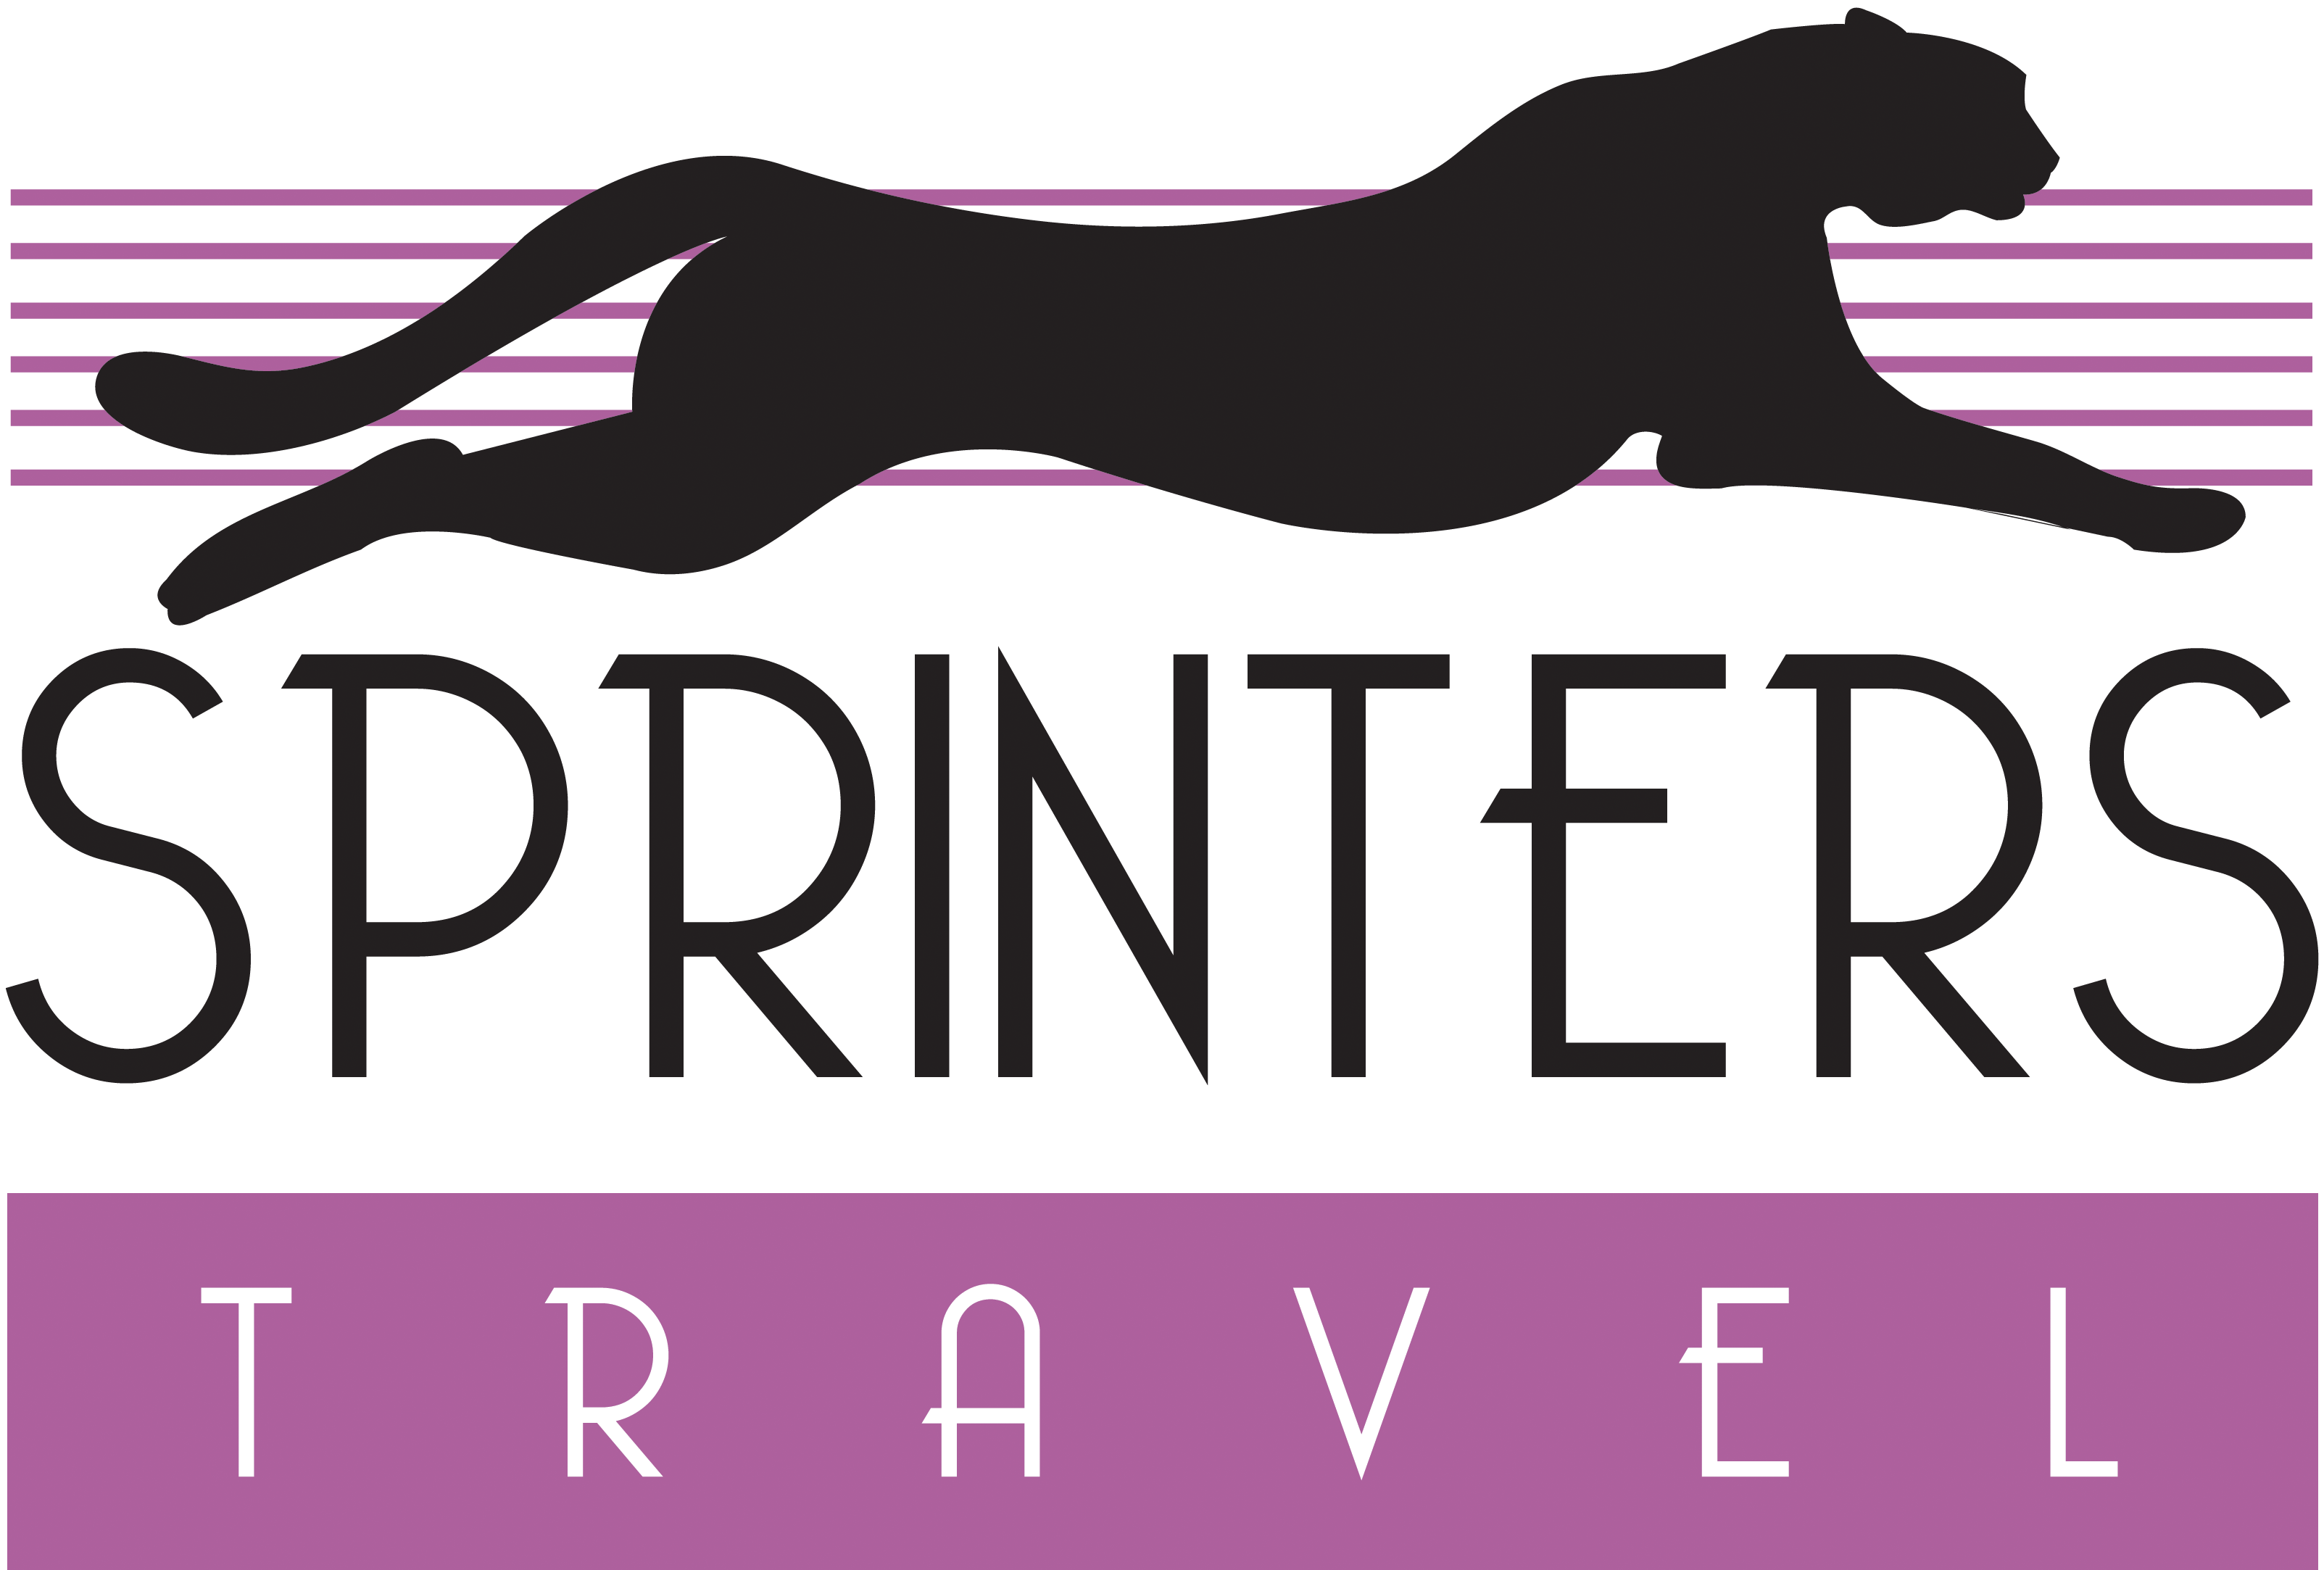 Sprinters Travel | Luxury Minibus Tours London & UK | Sprinters Travel